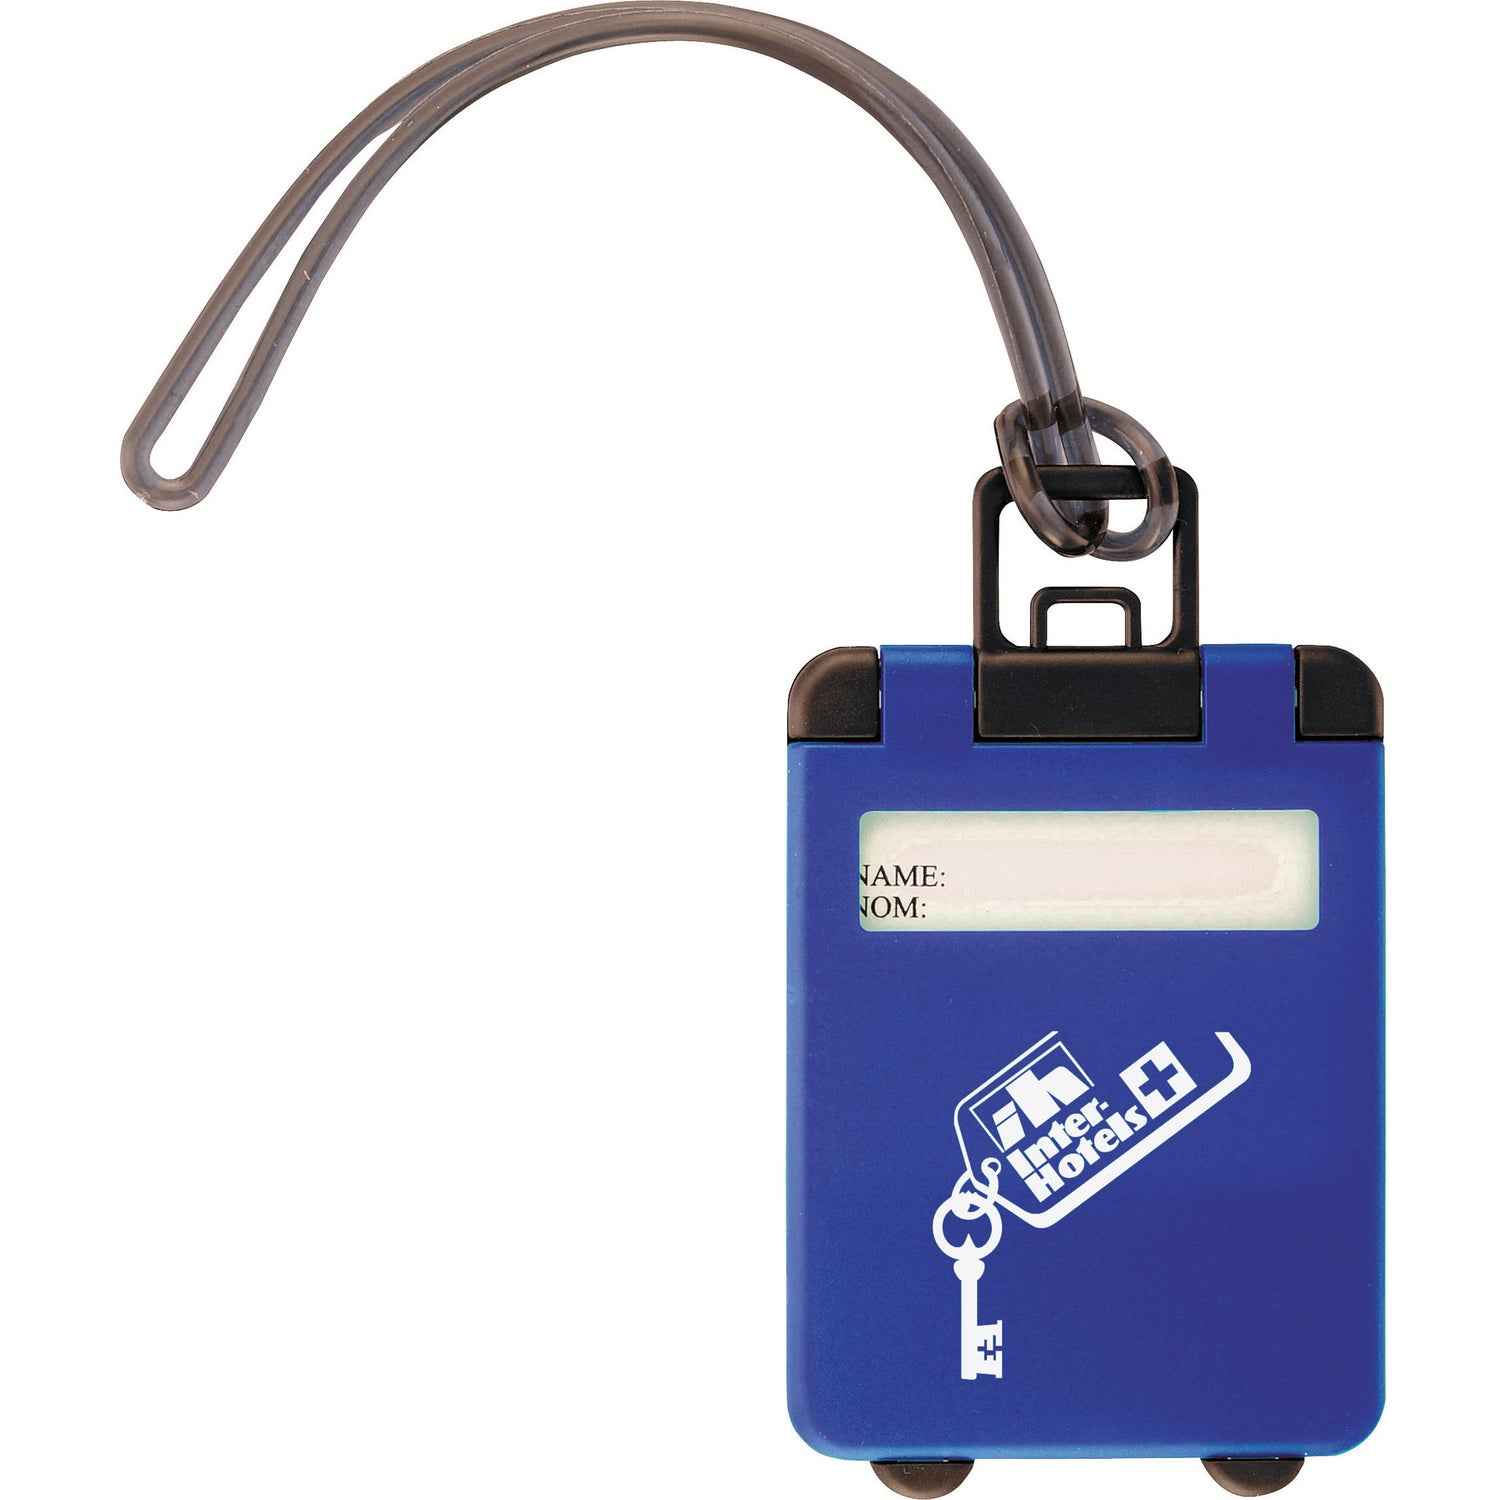 Taggy Luggage Tag Personalized Luggage Tags Ea